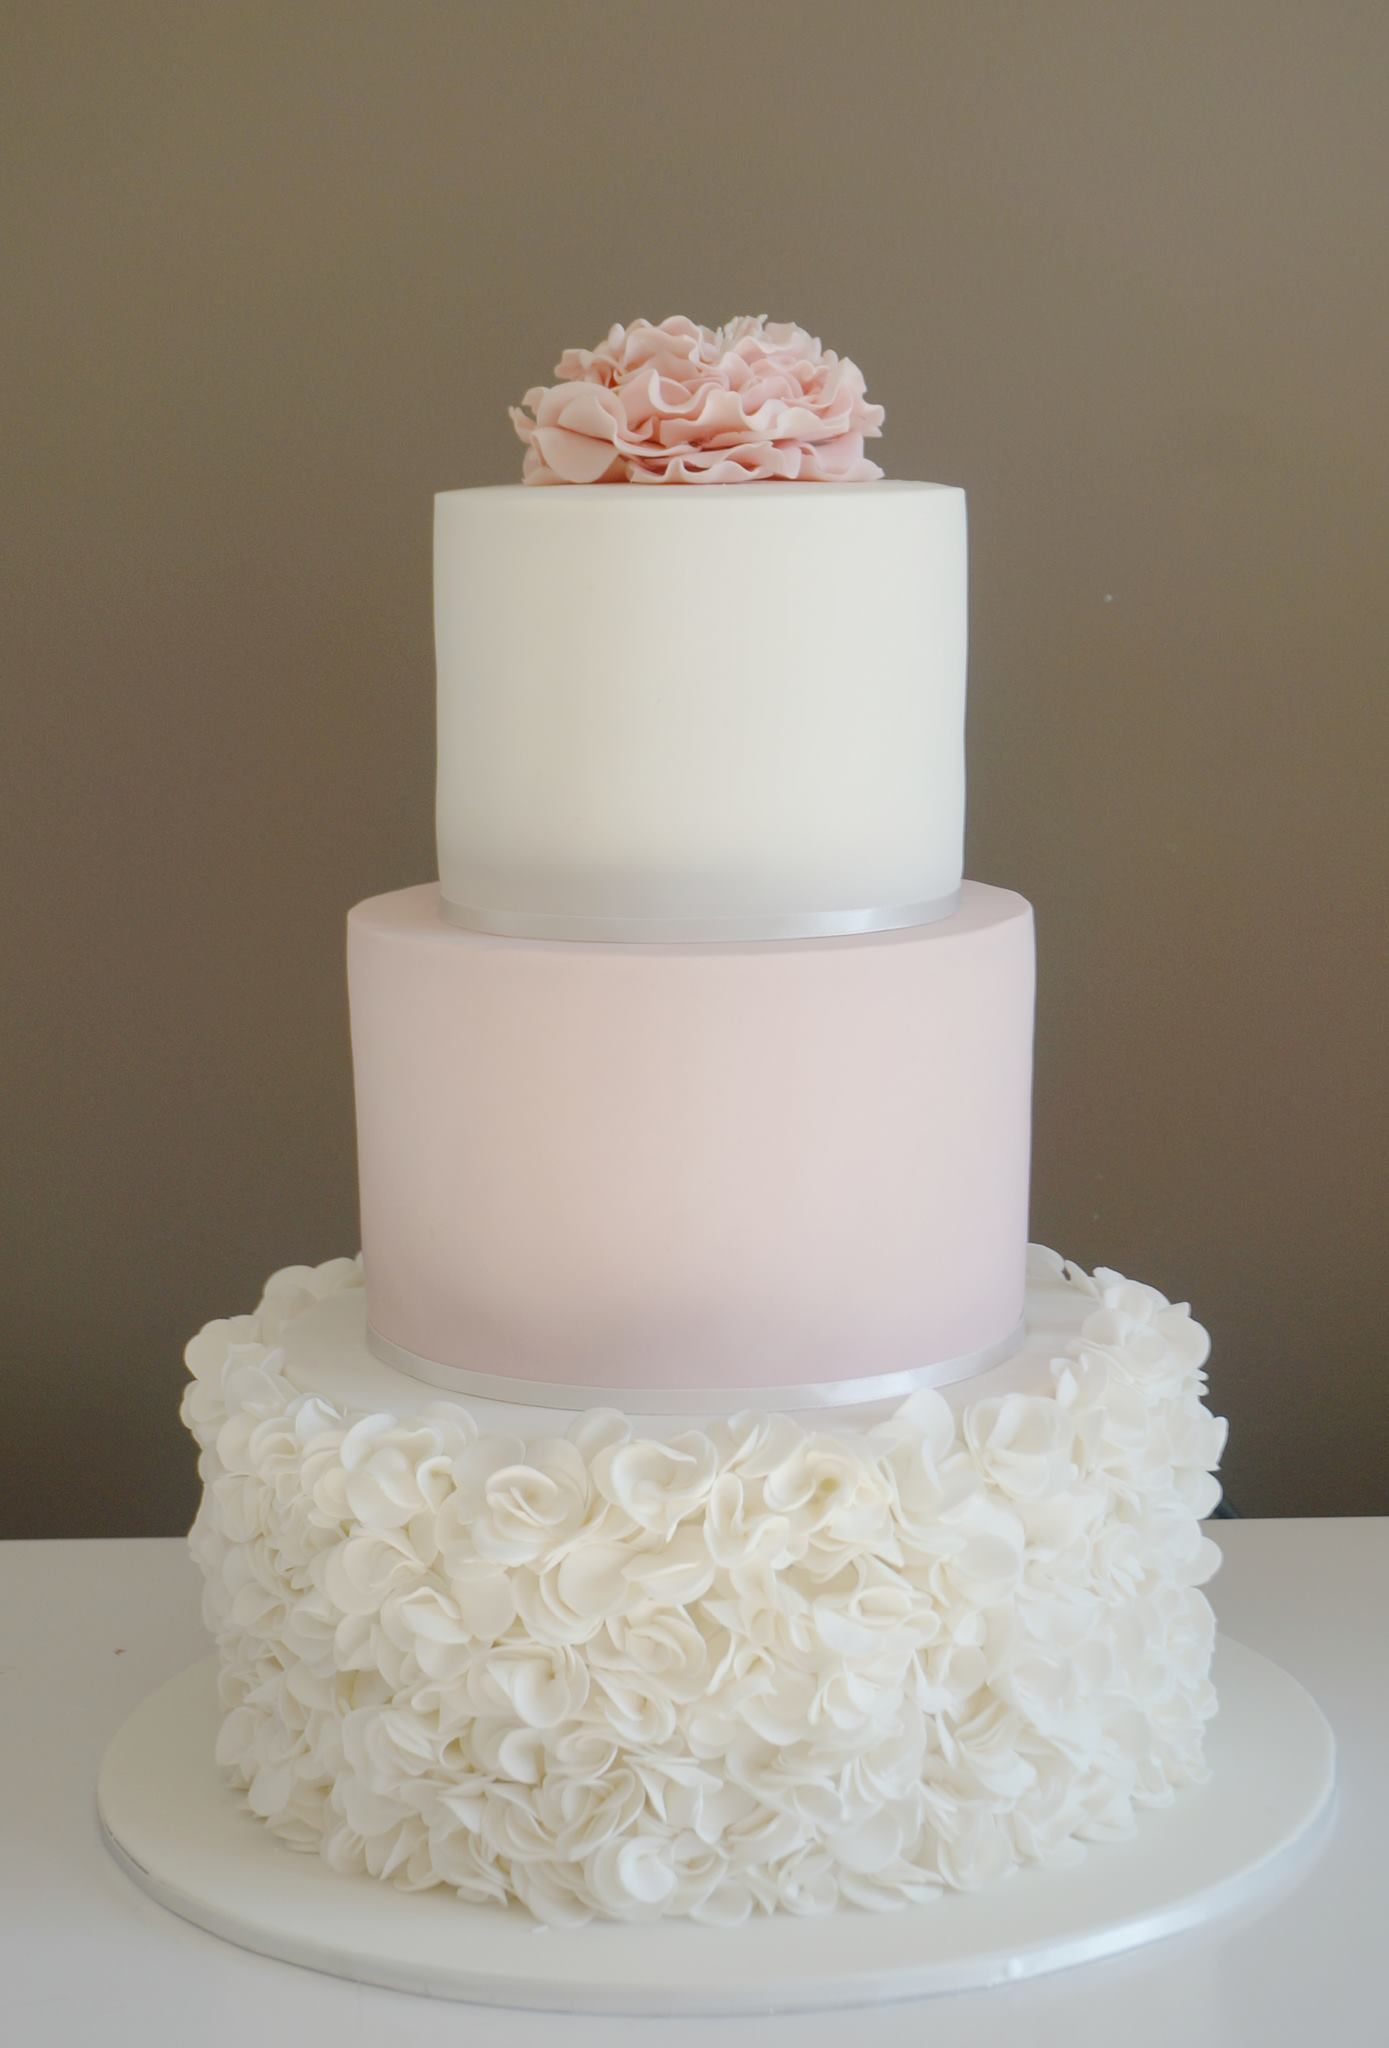 Three Tear Wedding Cakes.Pink And White Wedding Cake Very Pretty 3 Tier Cake With Ruffle